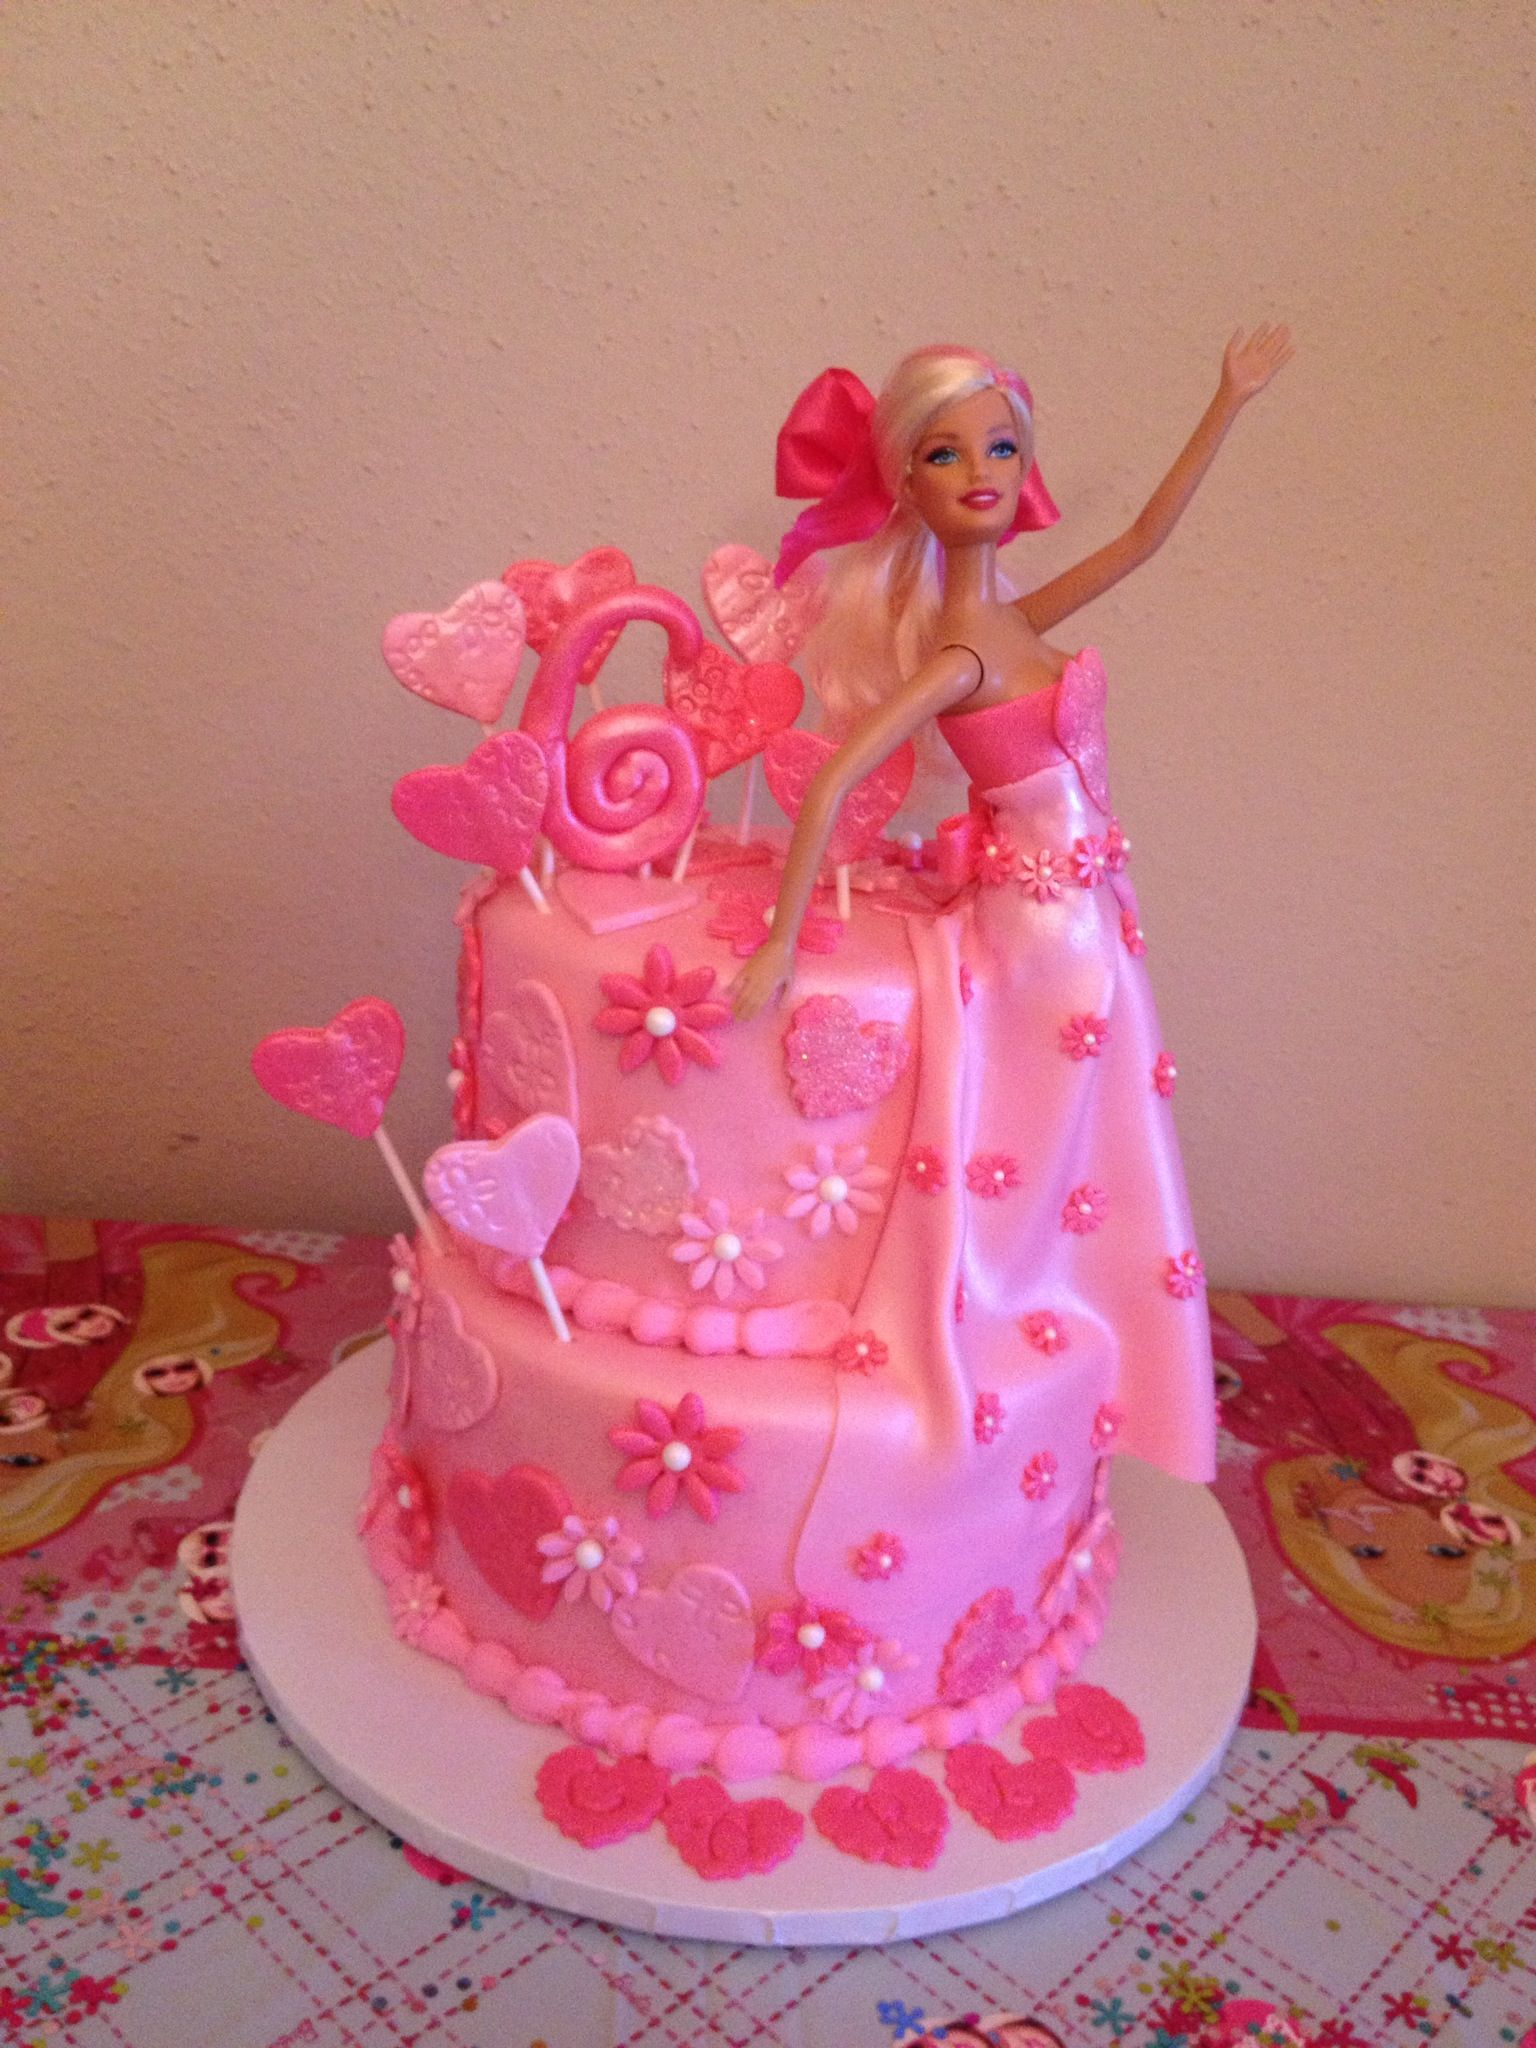 Barbie Birthday Cakes Pink Barbie Cake With Pink Hearts And Flowers